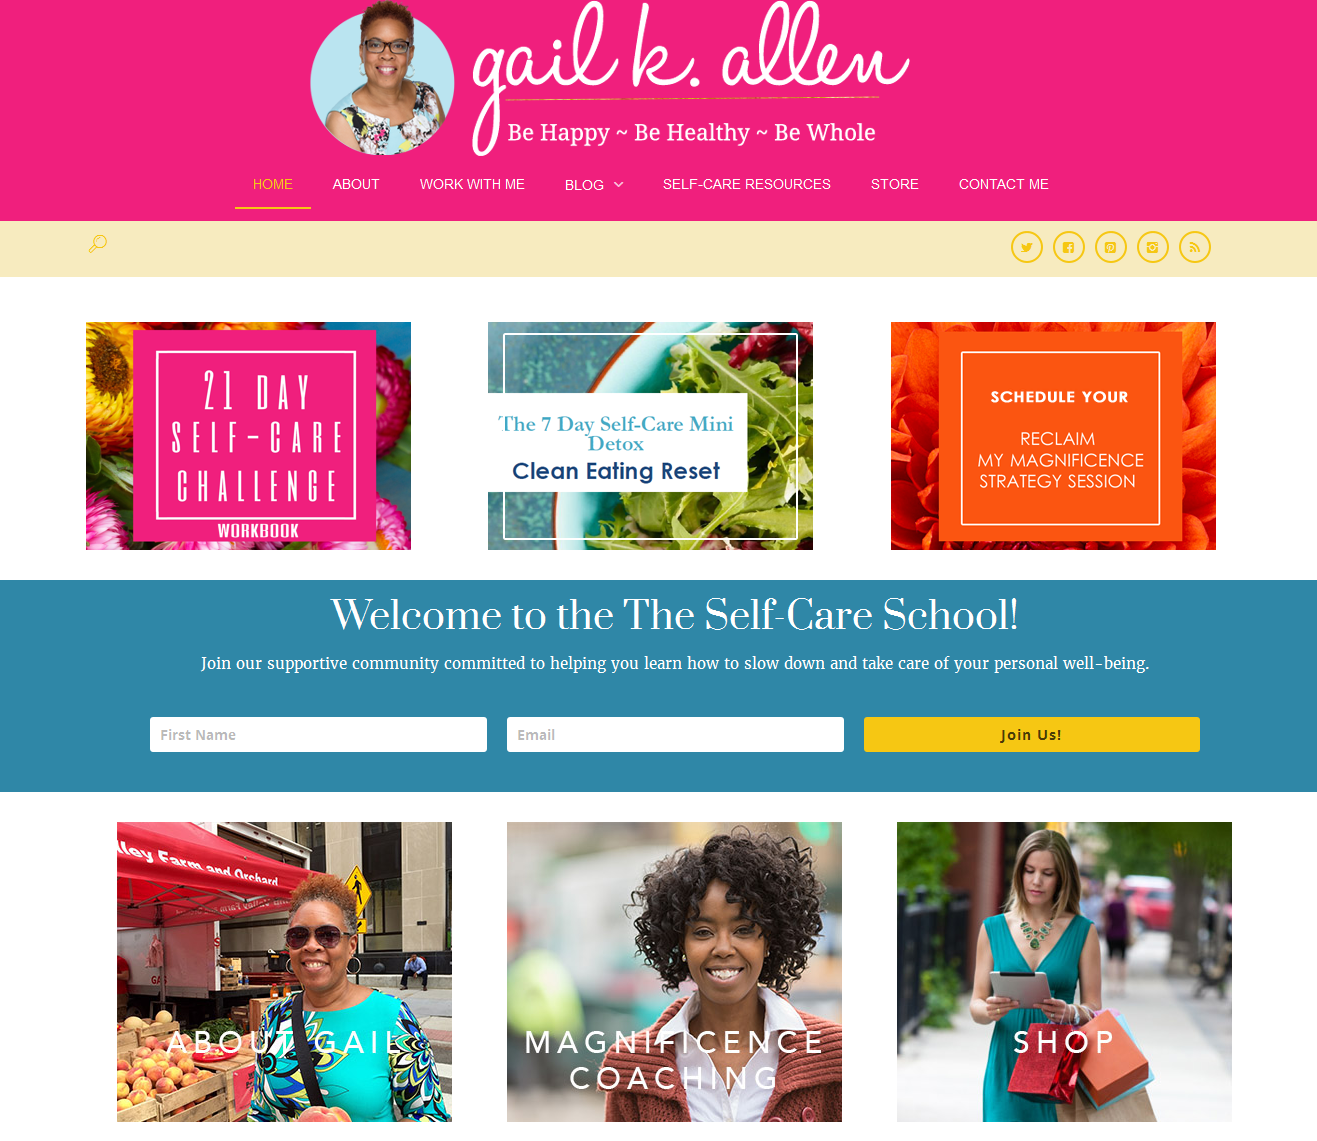 Website Design Inspiration for Coaches, Mentors, and Service Professionals